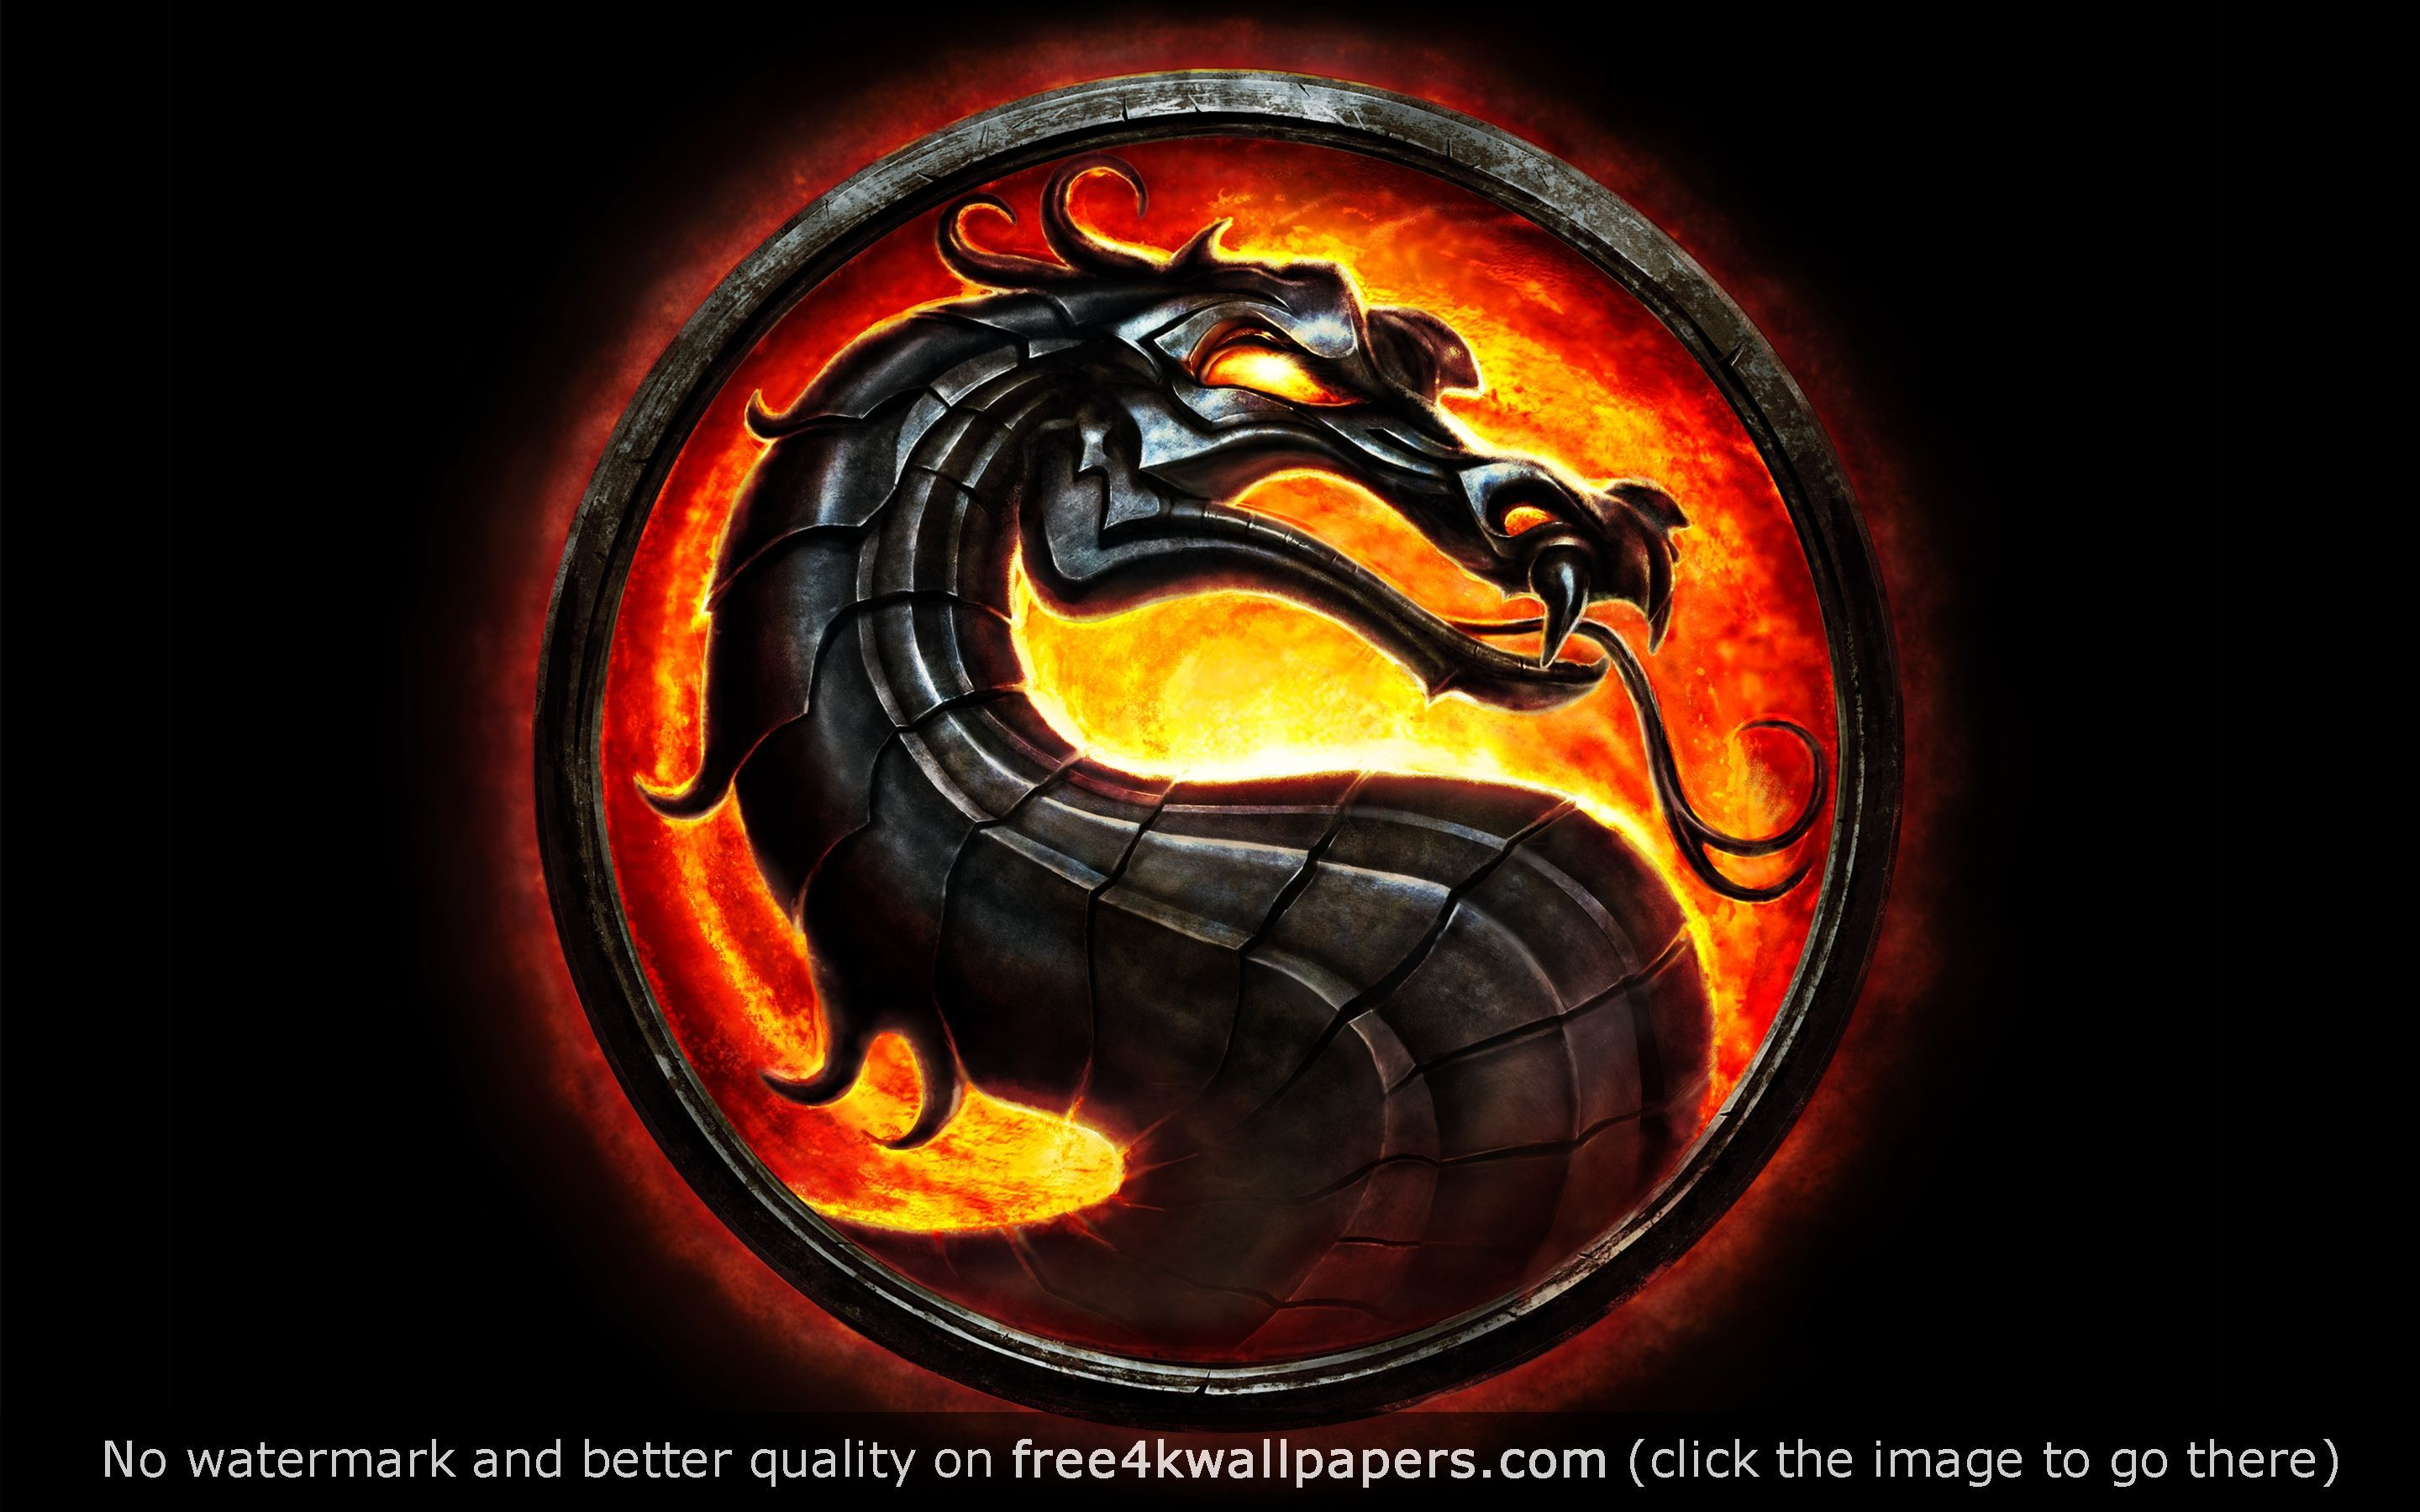 kombat wallpapers for desktop and mobile devices 2880x1800